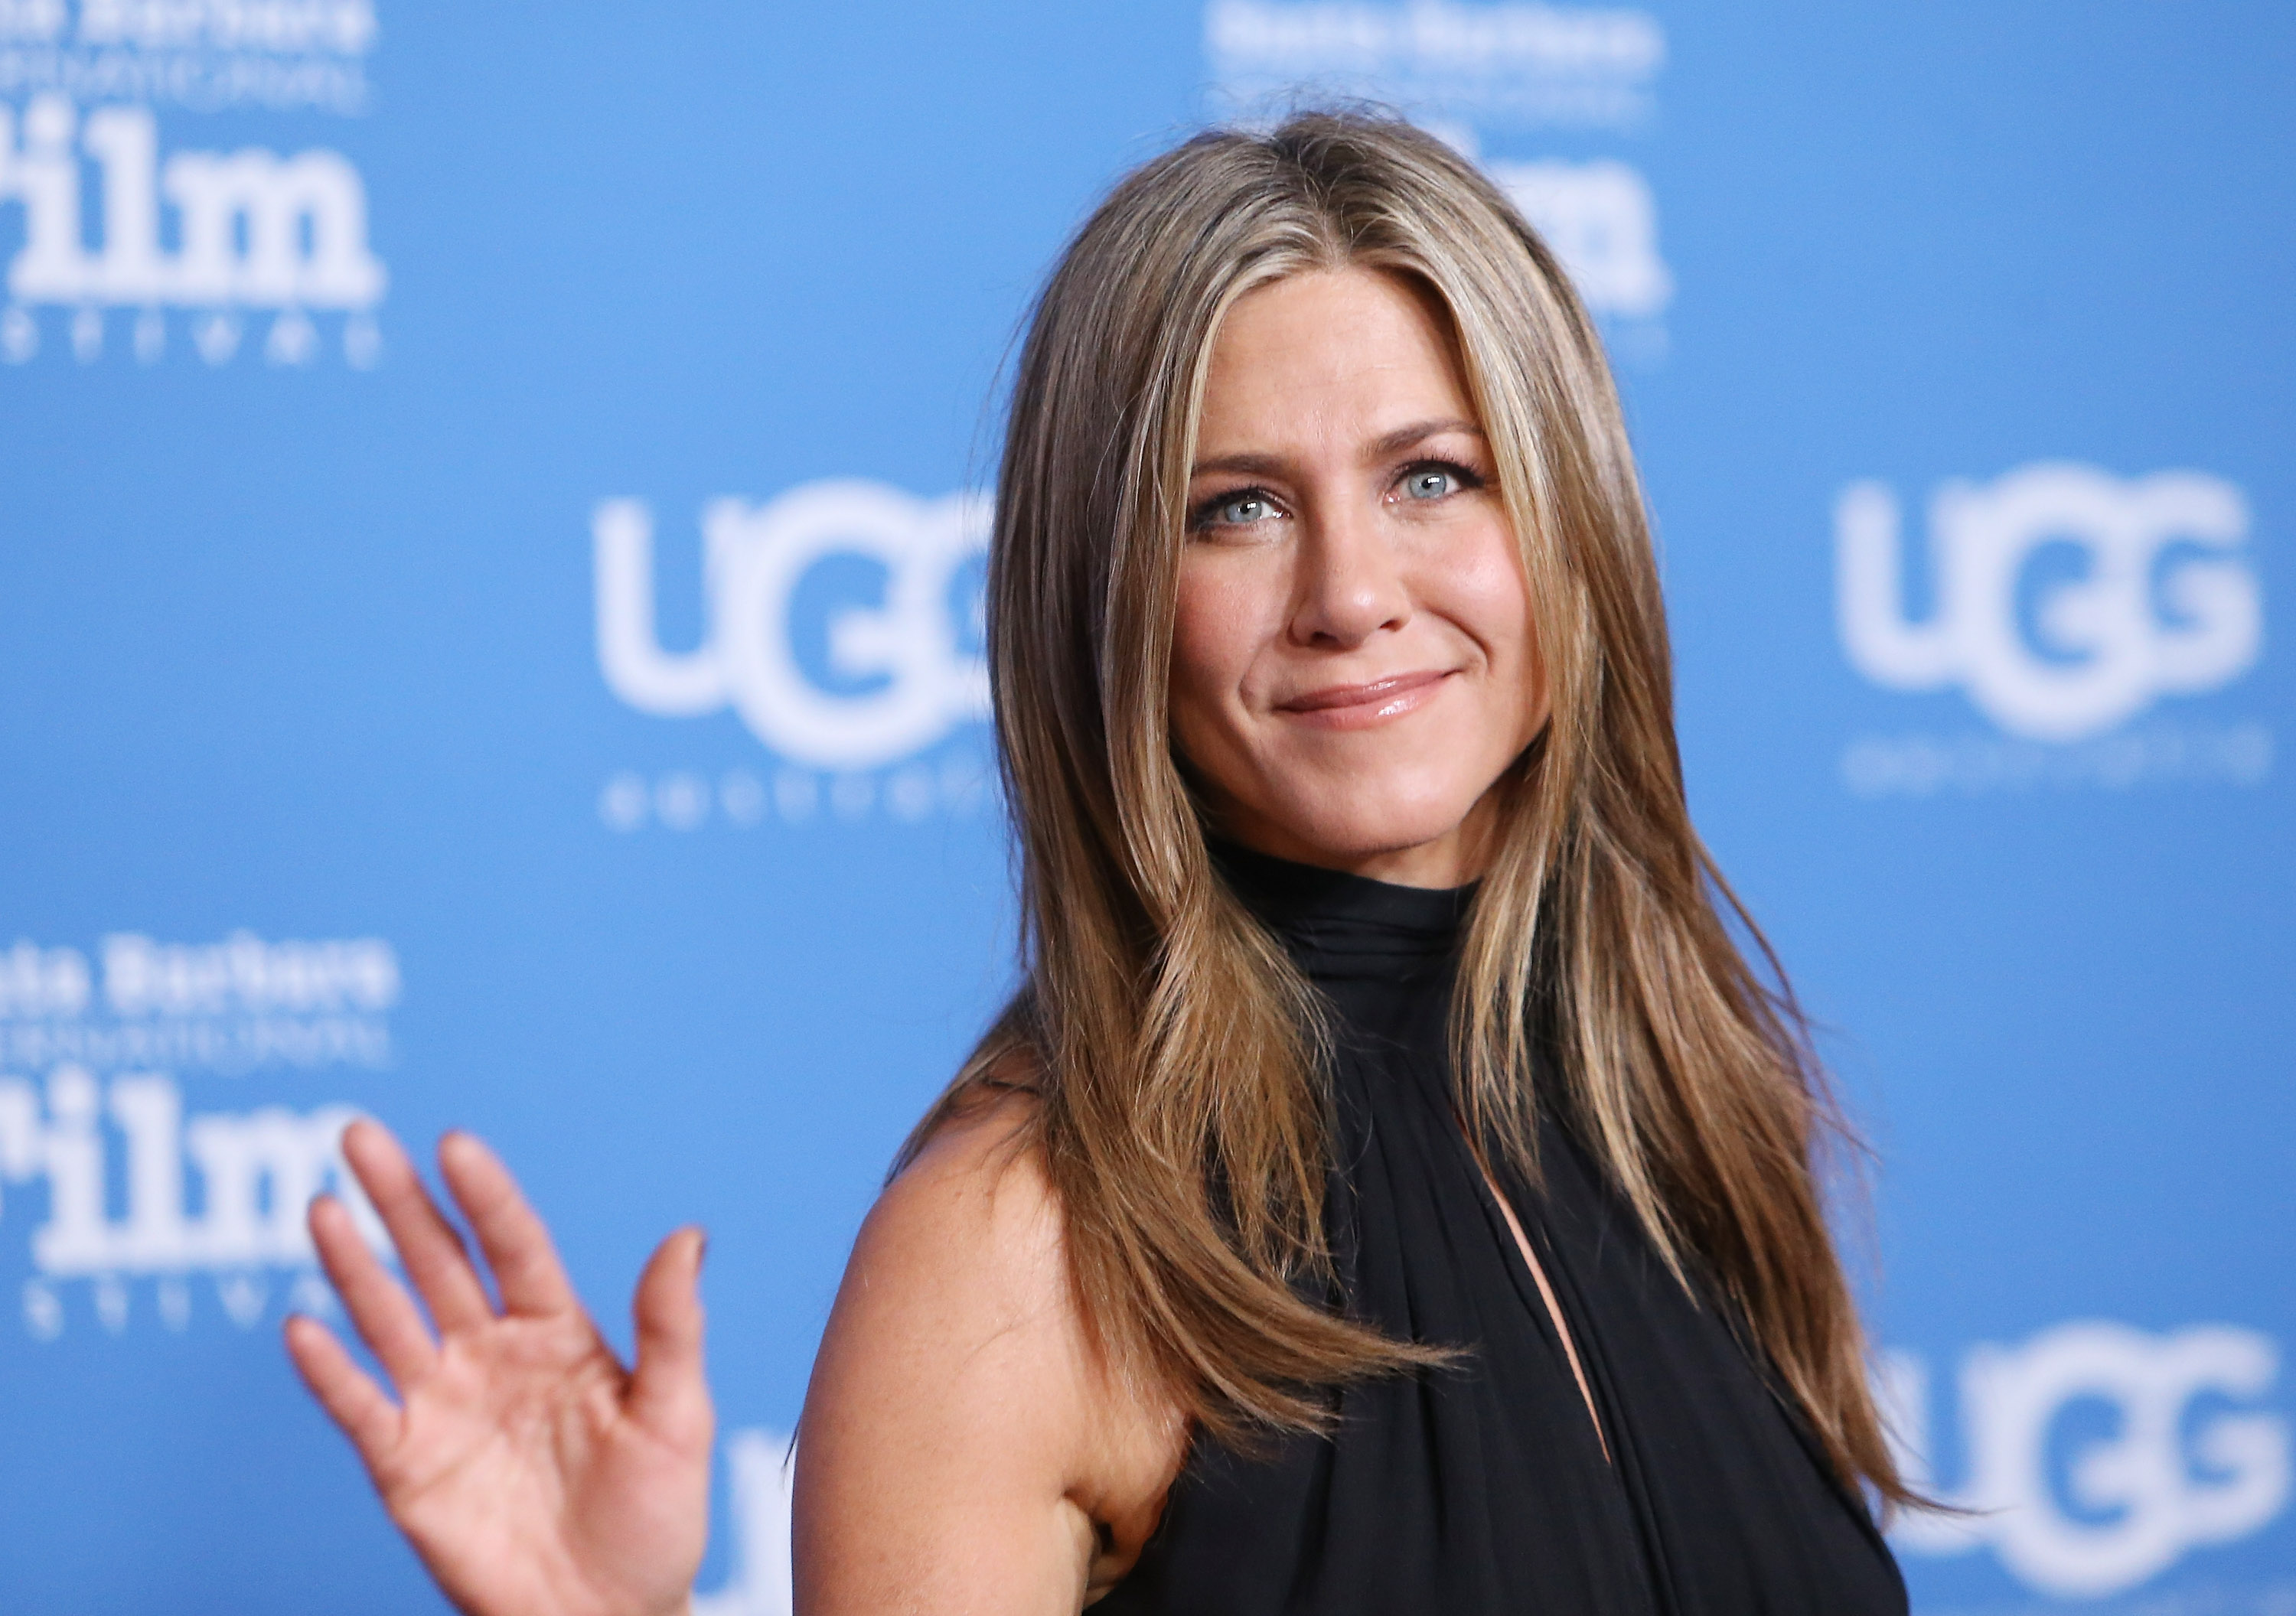 Jennifer Aniston arrives at Santa Barbara Film Festival.